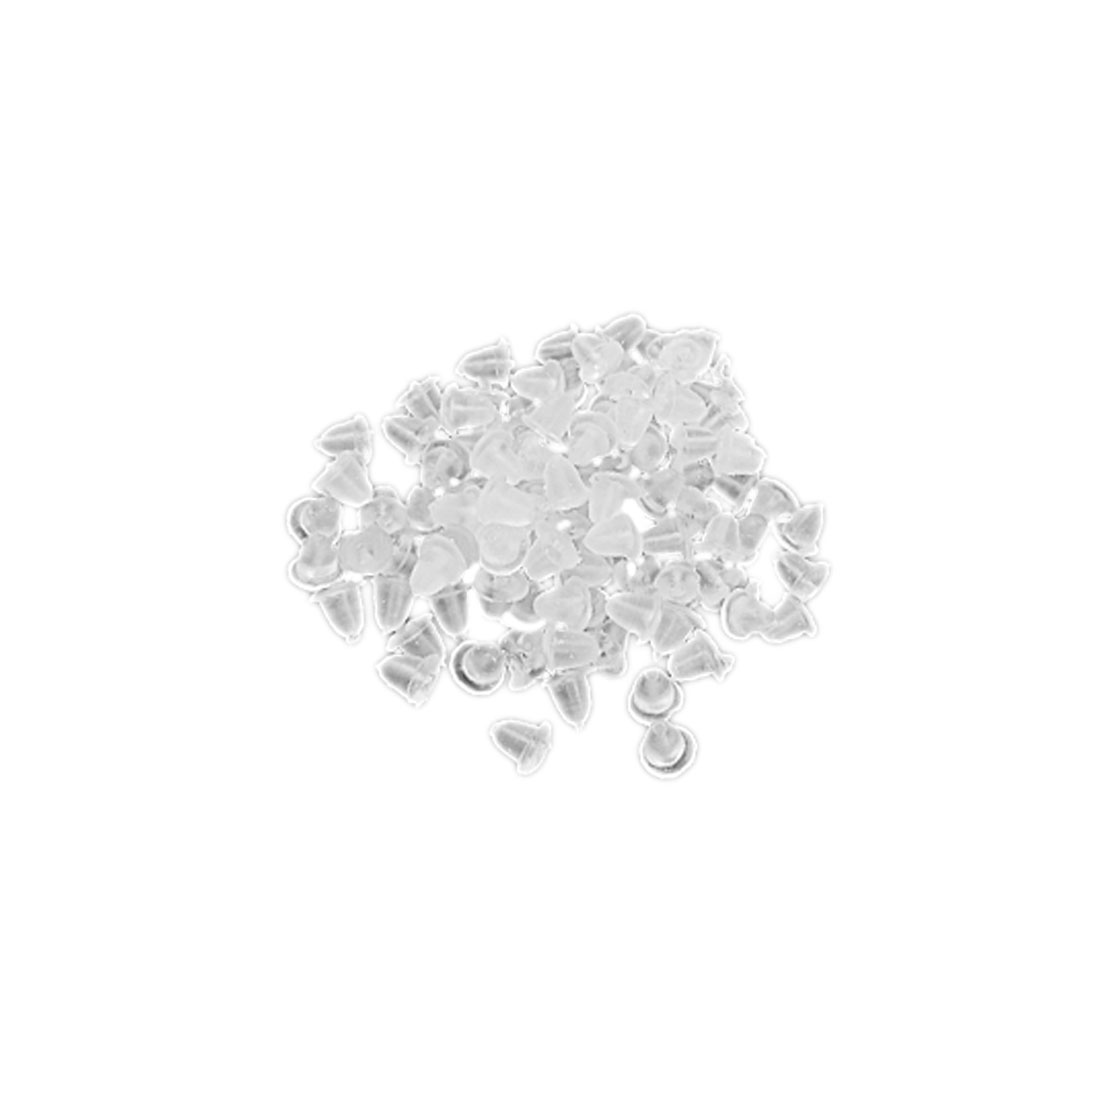 200 Pcs Replacement Clear Soft Plastic Earring Back Caps